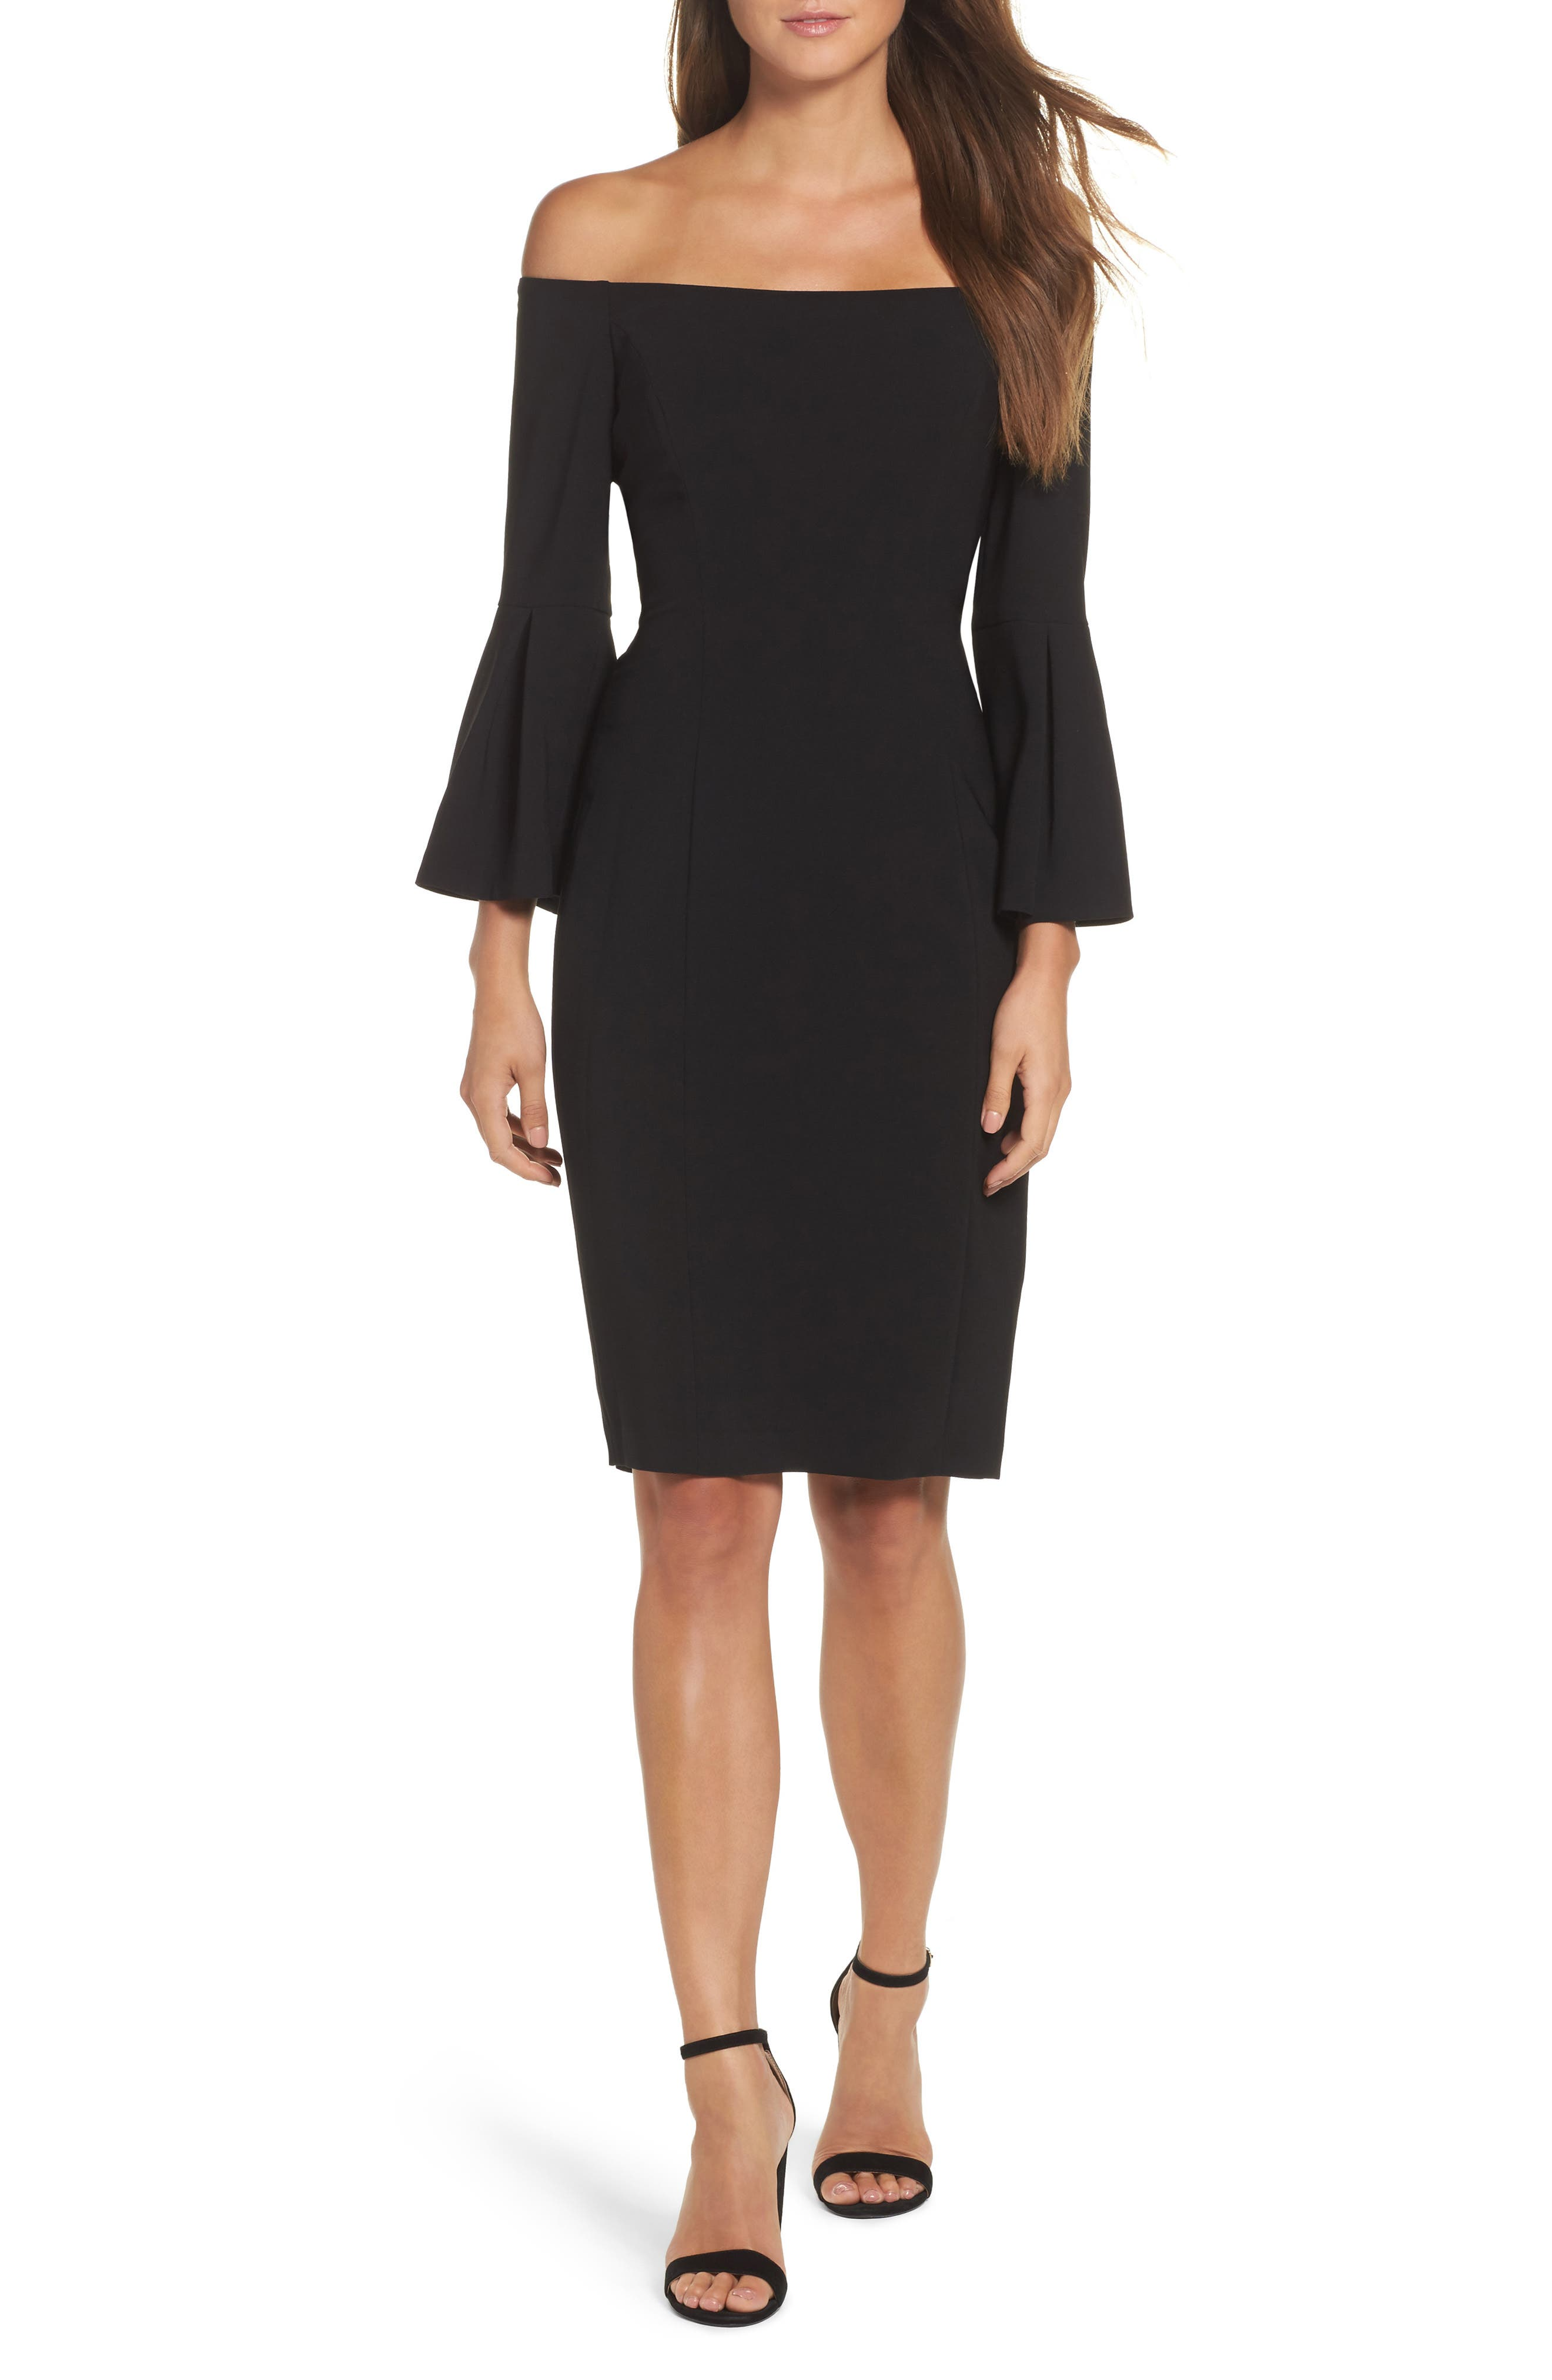 VINCE CAMUTO,                             Off the Shoulder Bell Sleeve Sheath Dress,                             Main thumbnail 1, color,                             001